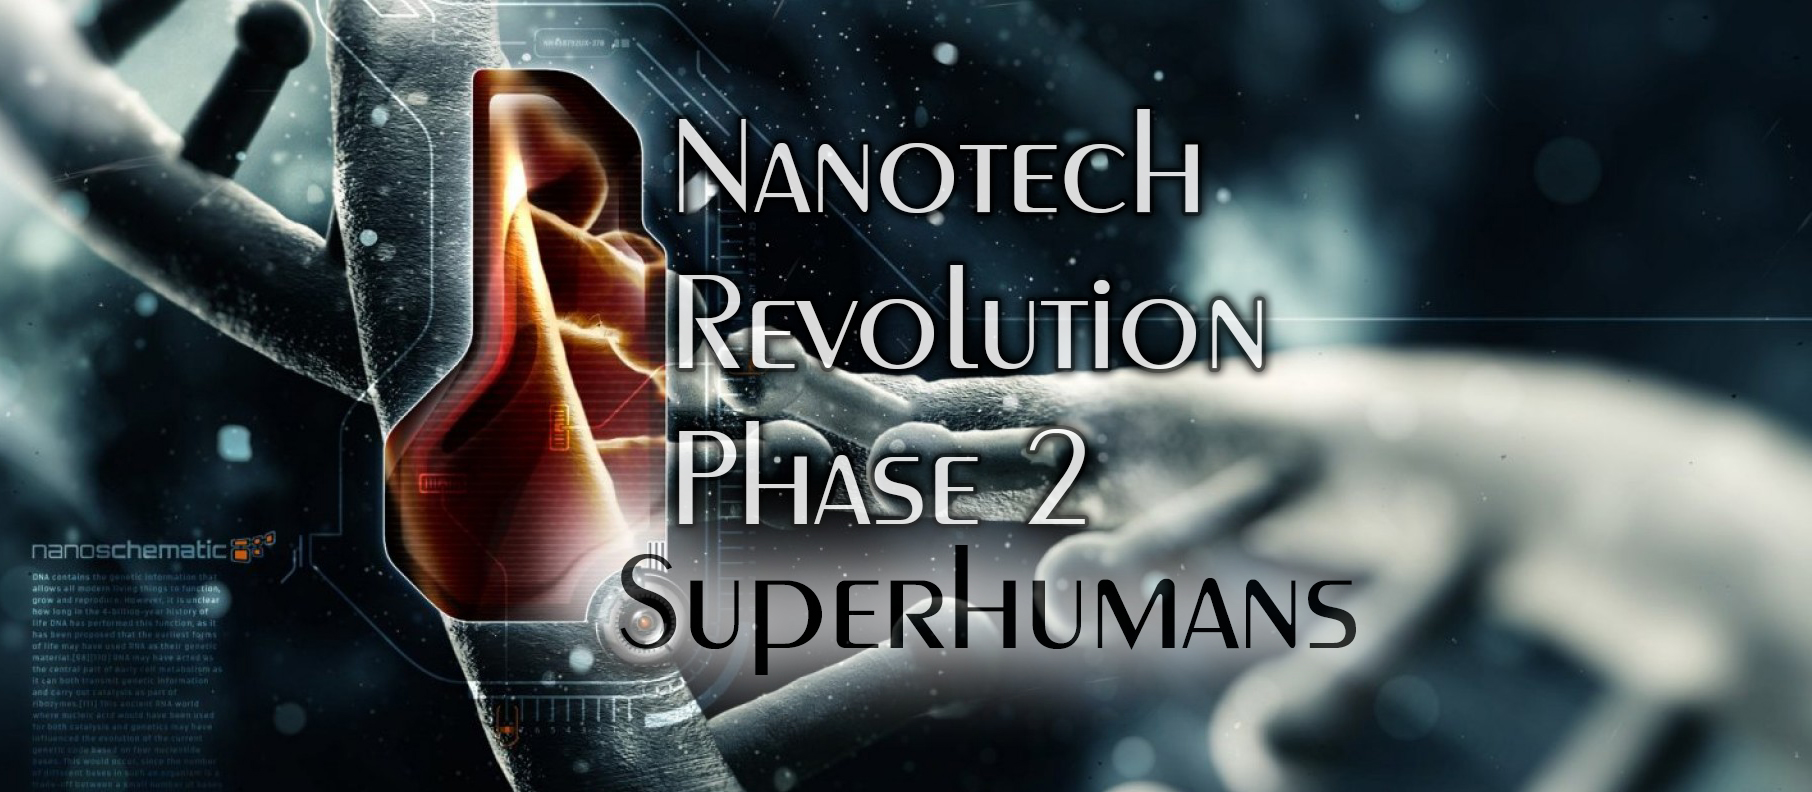 Nanotechnology Superhumans